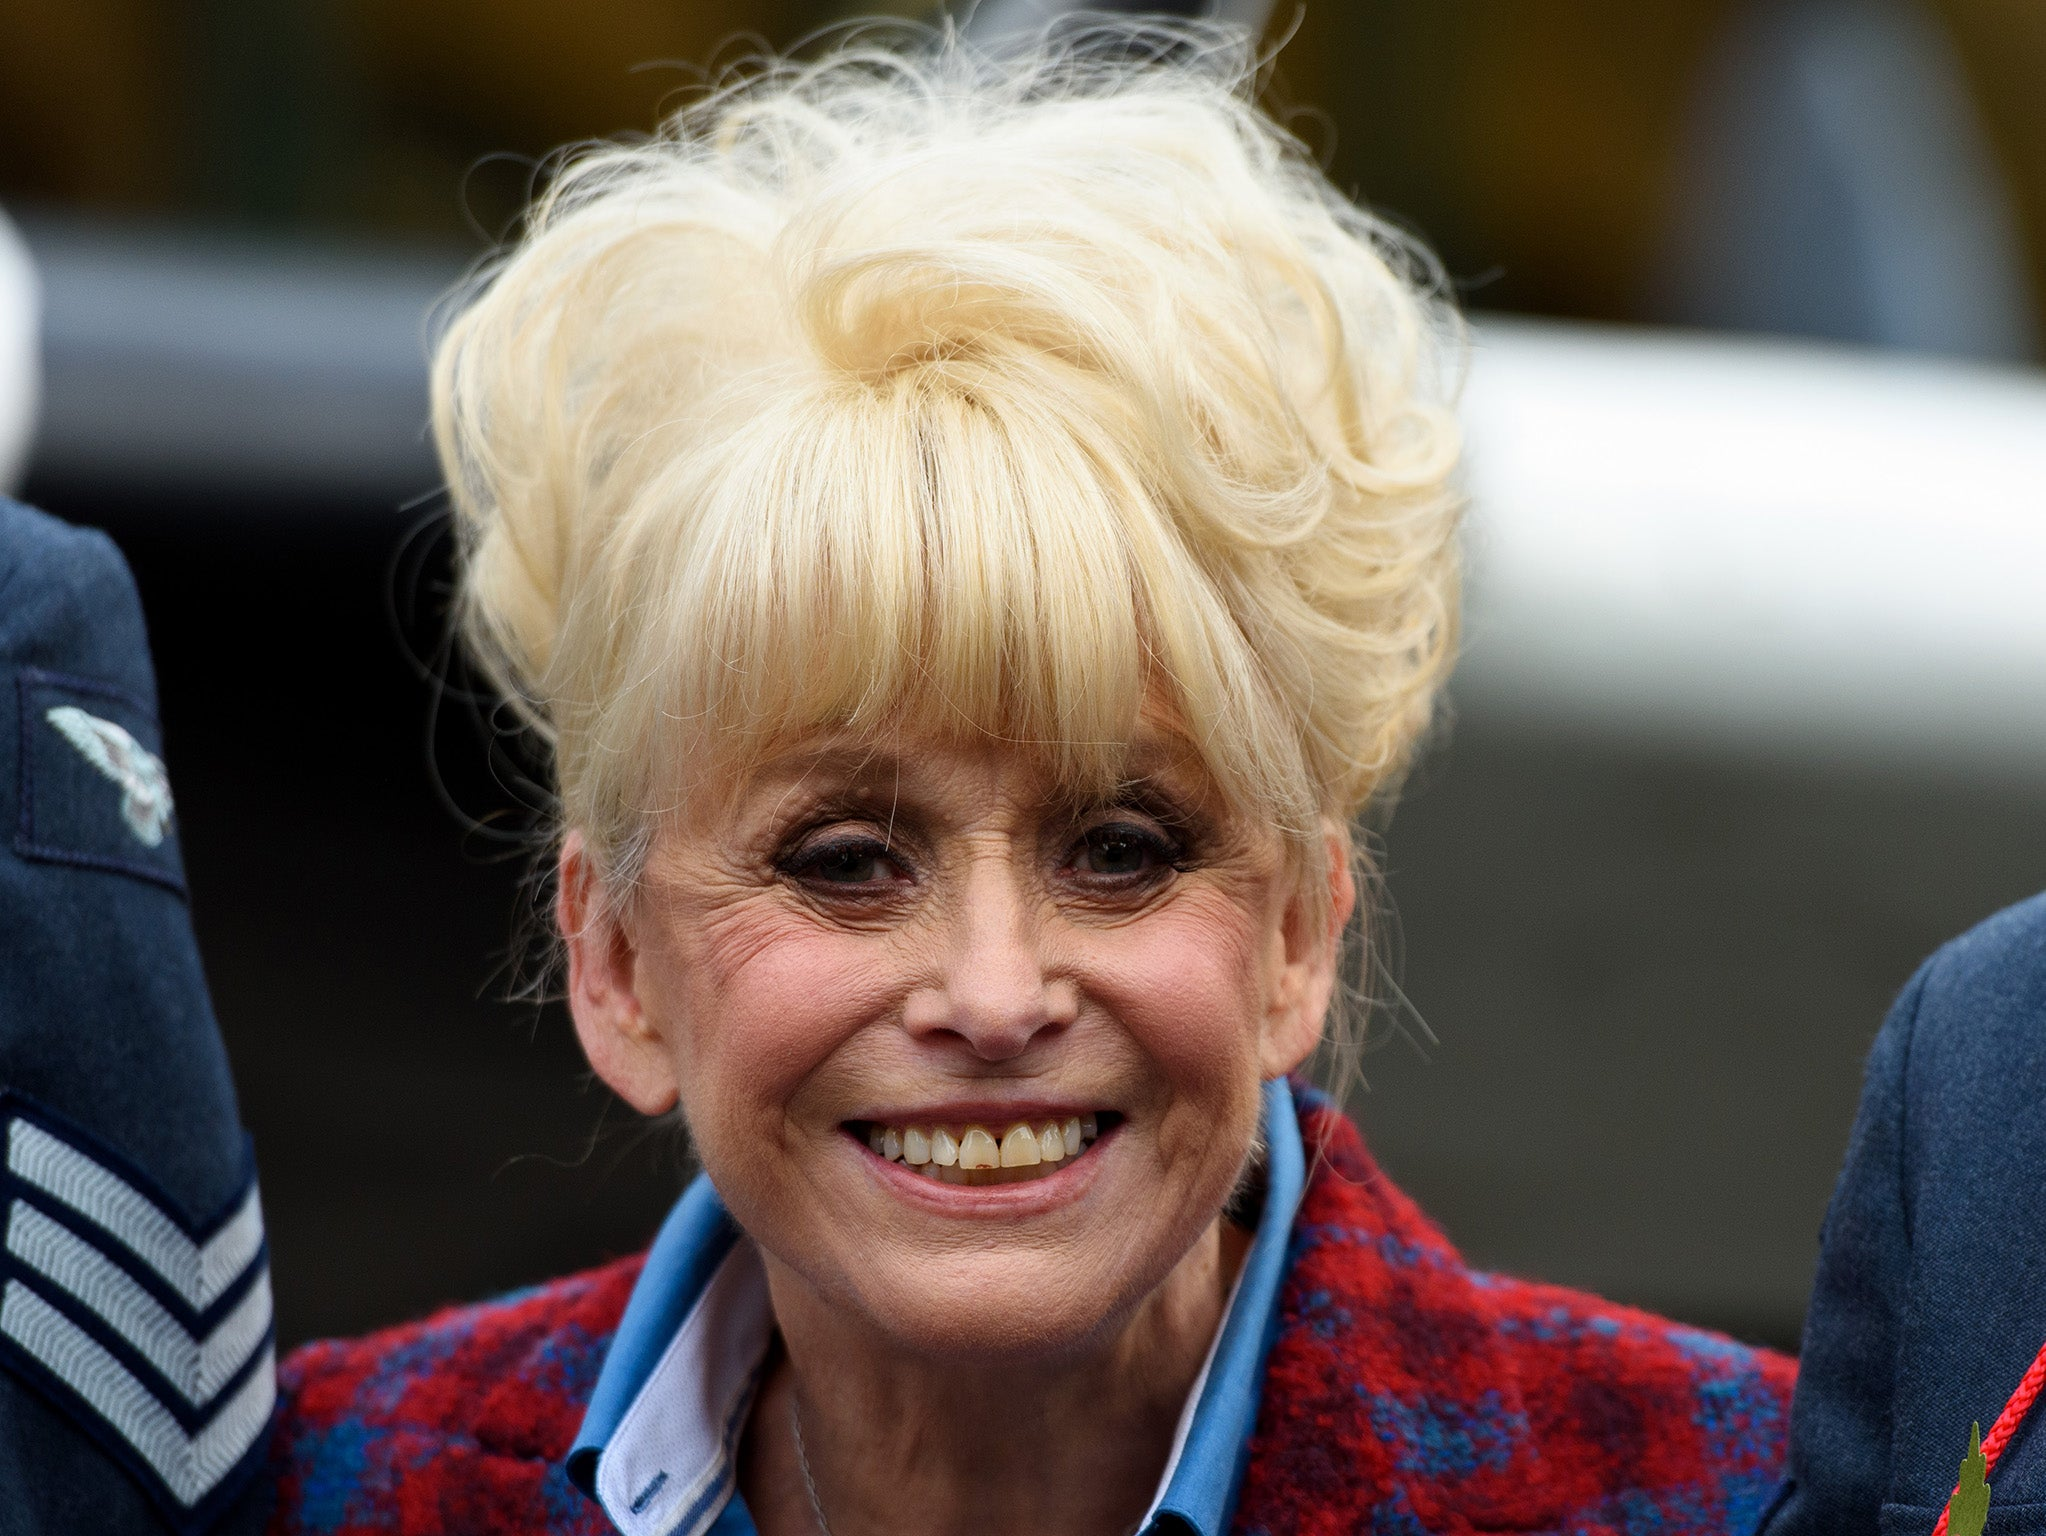 Shane Richie says he fears for Barbara Windsor's 'cruel' Alzheimer's…